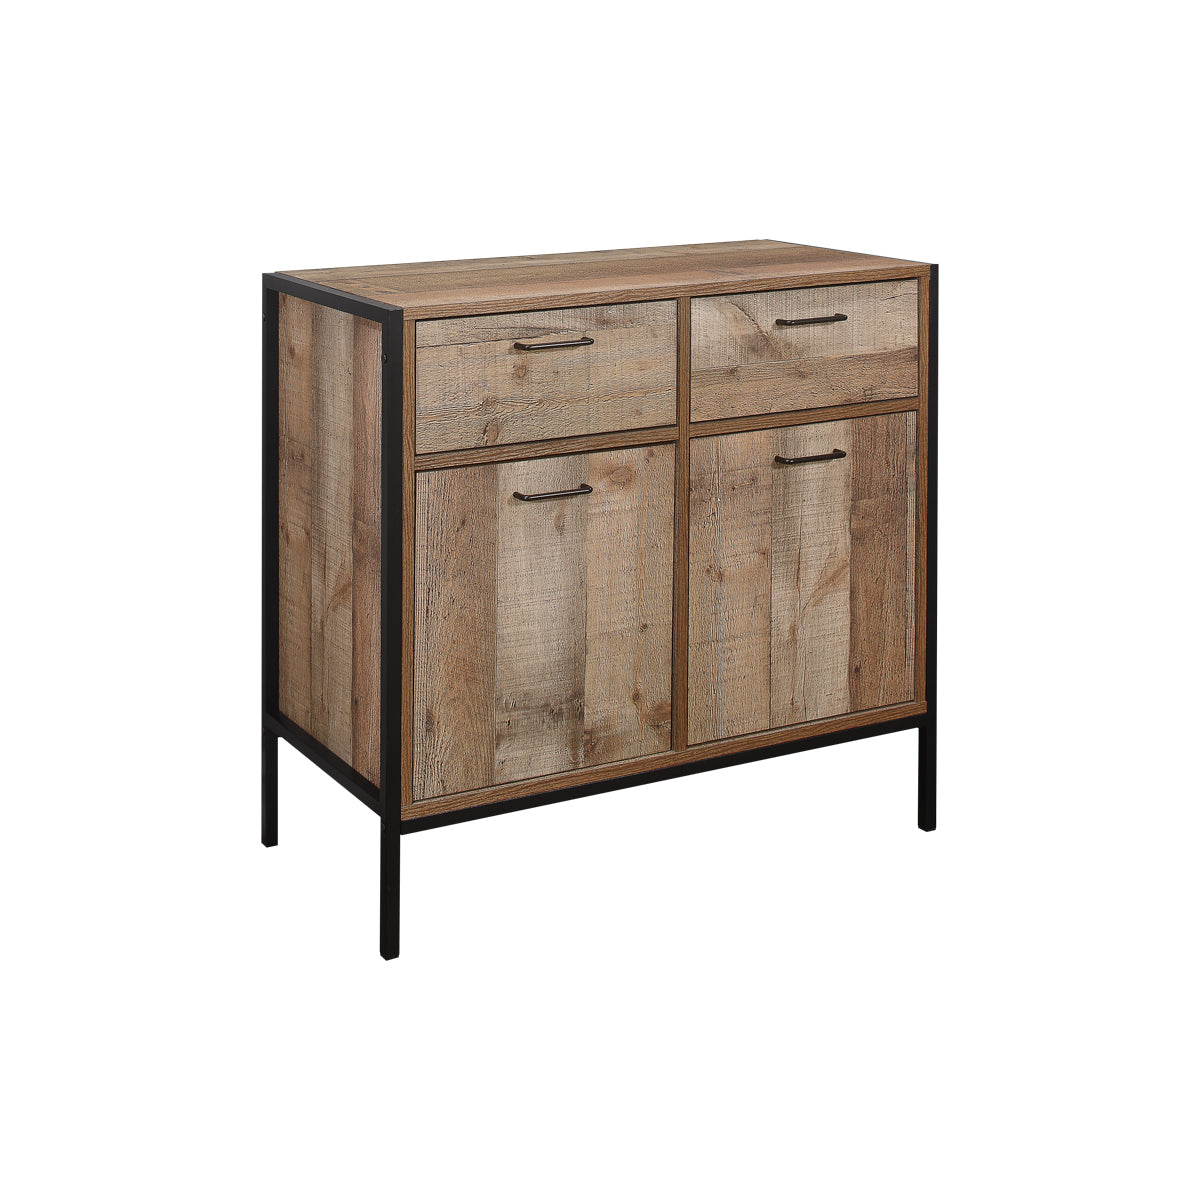 Metro 2 Door 2 Drawer Sideboard - Ezzo